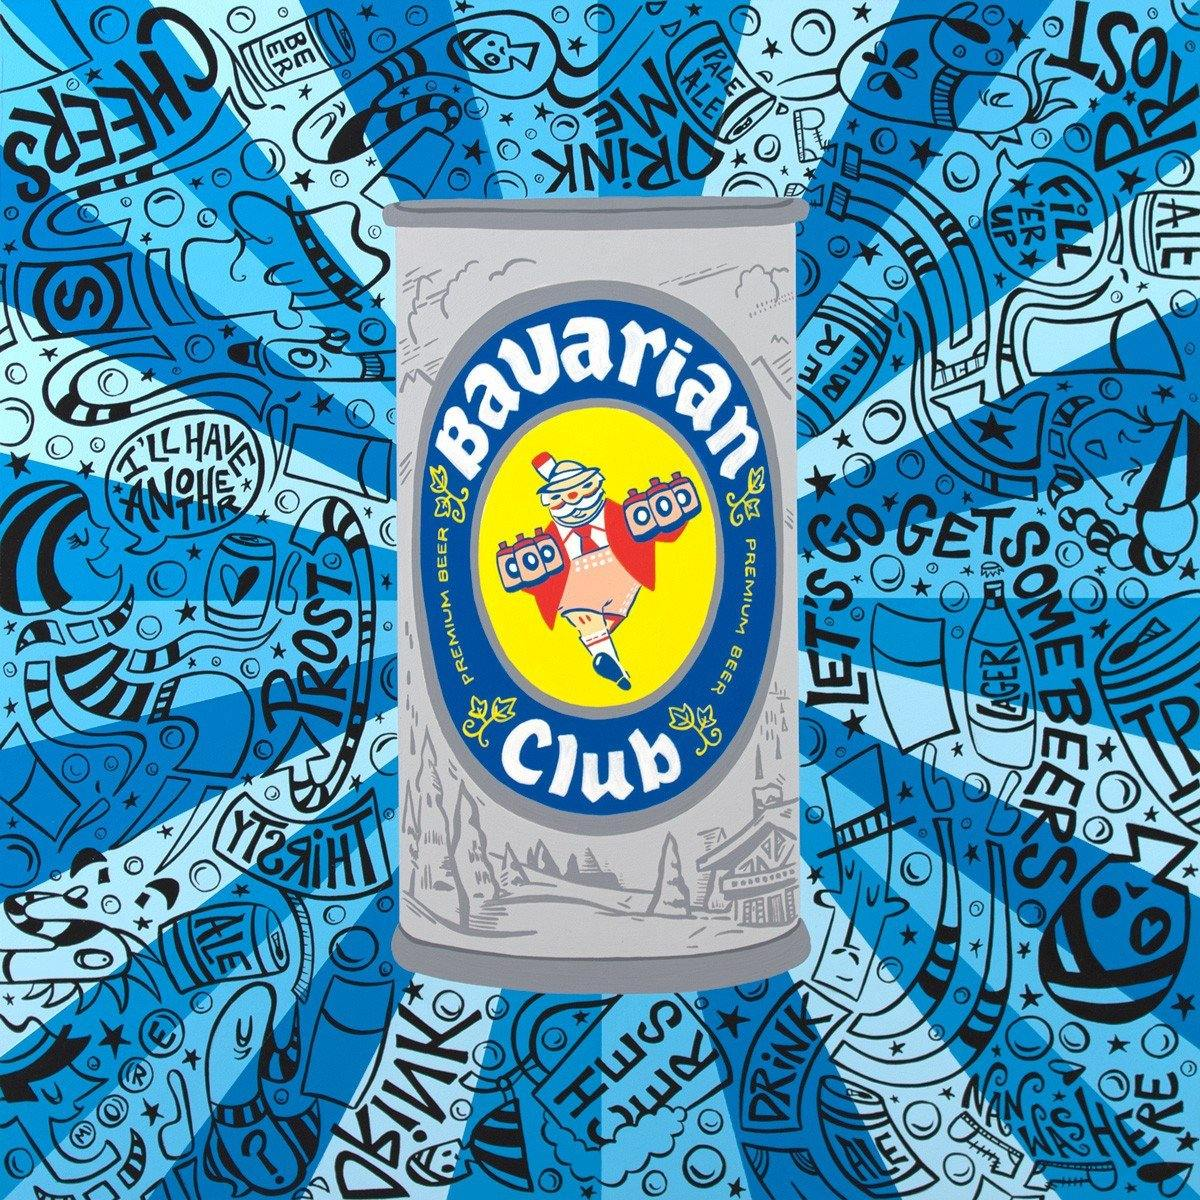 Bavarian Club Beer Can - Signed Prints | Fine Art and Limited Edition Prints | The Art Of Nan Coffey